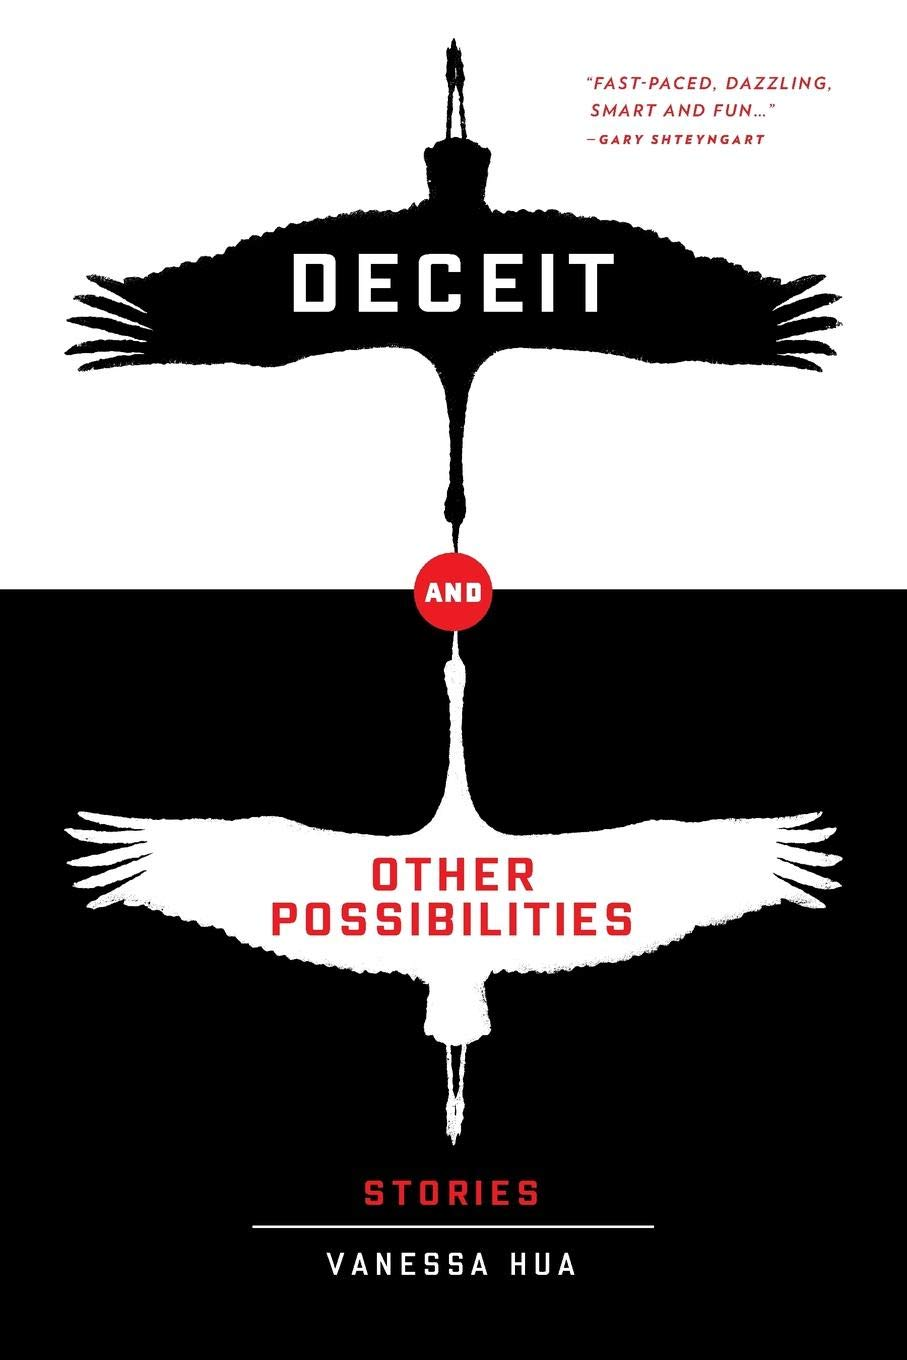 Deceit and Other Possibilities: Vanessa Hua: 9780997199628